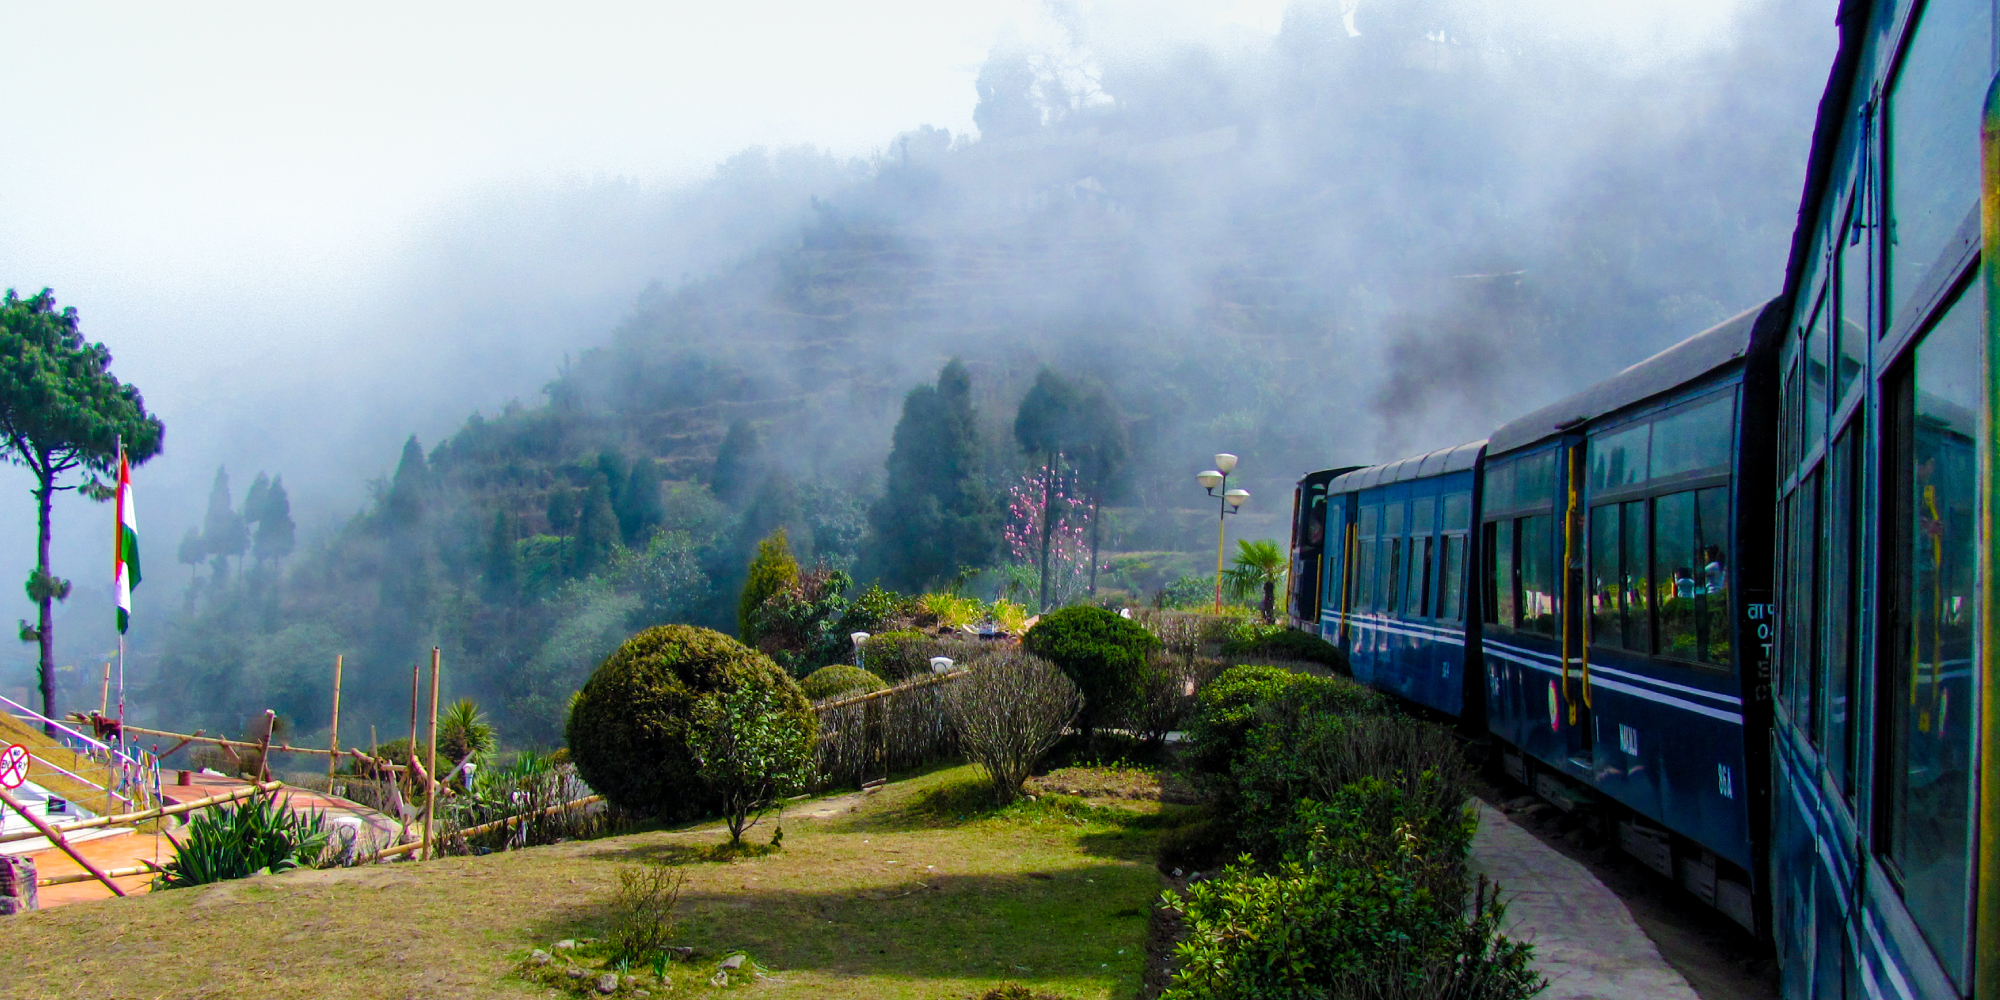 Train passing a beautiful garden and entering into fog at Darjeeling, India